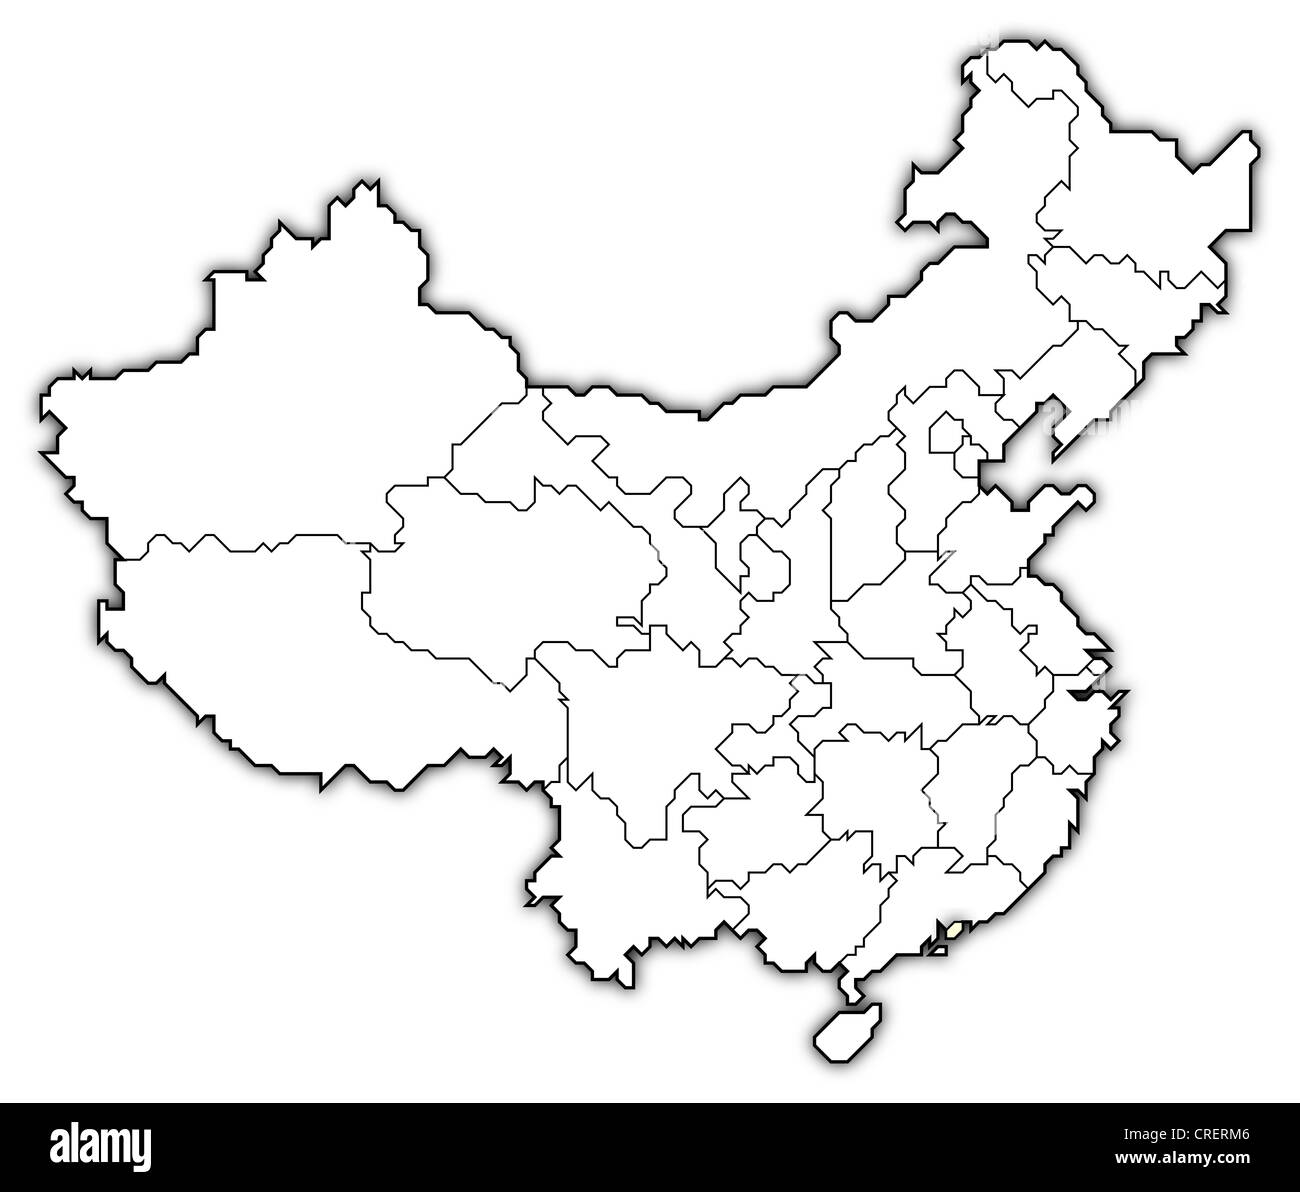 China Political Map Black and White Stock Photos & Images   Alamy